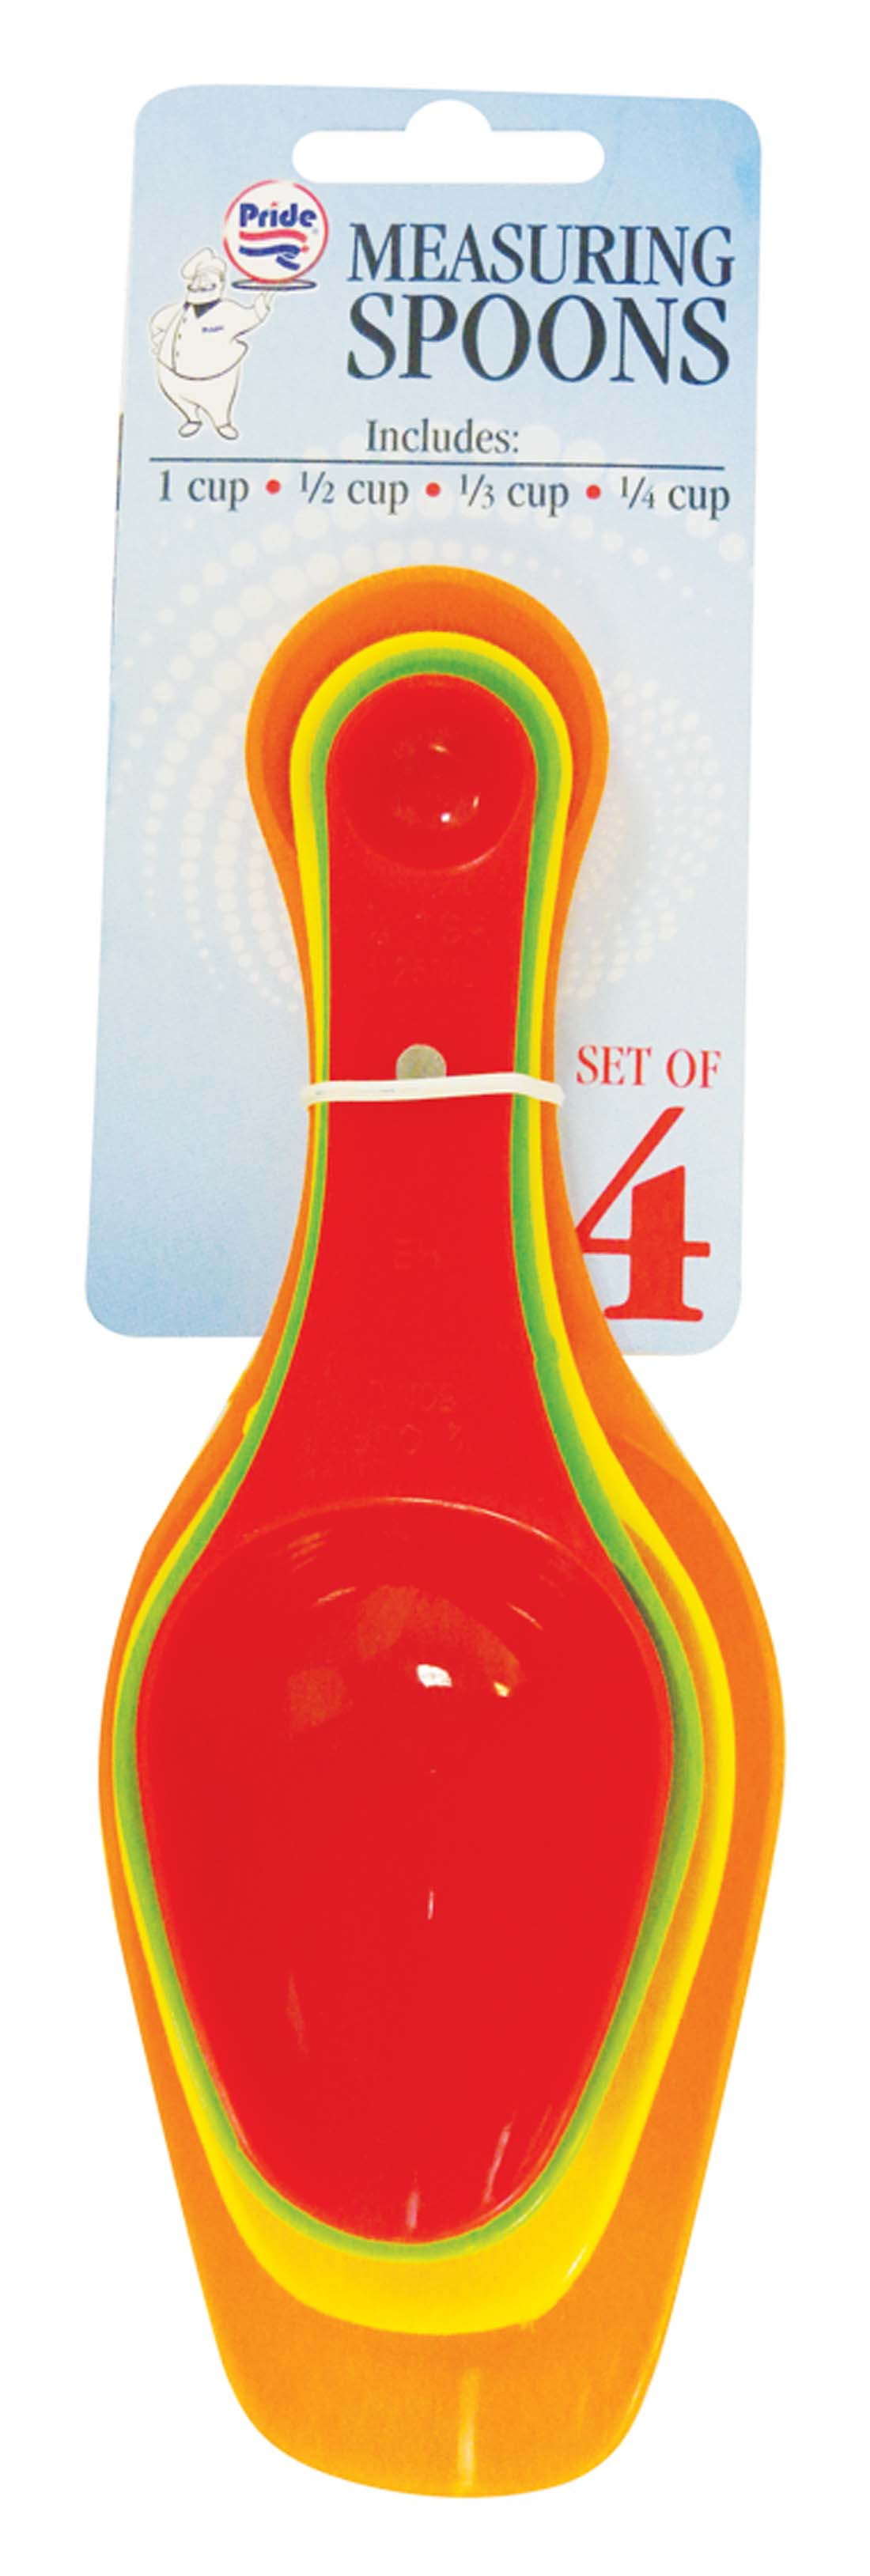 View MEASURING SPOONS 4 PC ASSORTED COLORS WITH MAGNETIC STORING - 1 CUP/ 1/2 CUP/ 1/3 CUP/1/4 CUP